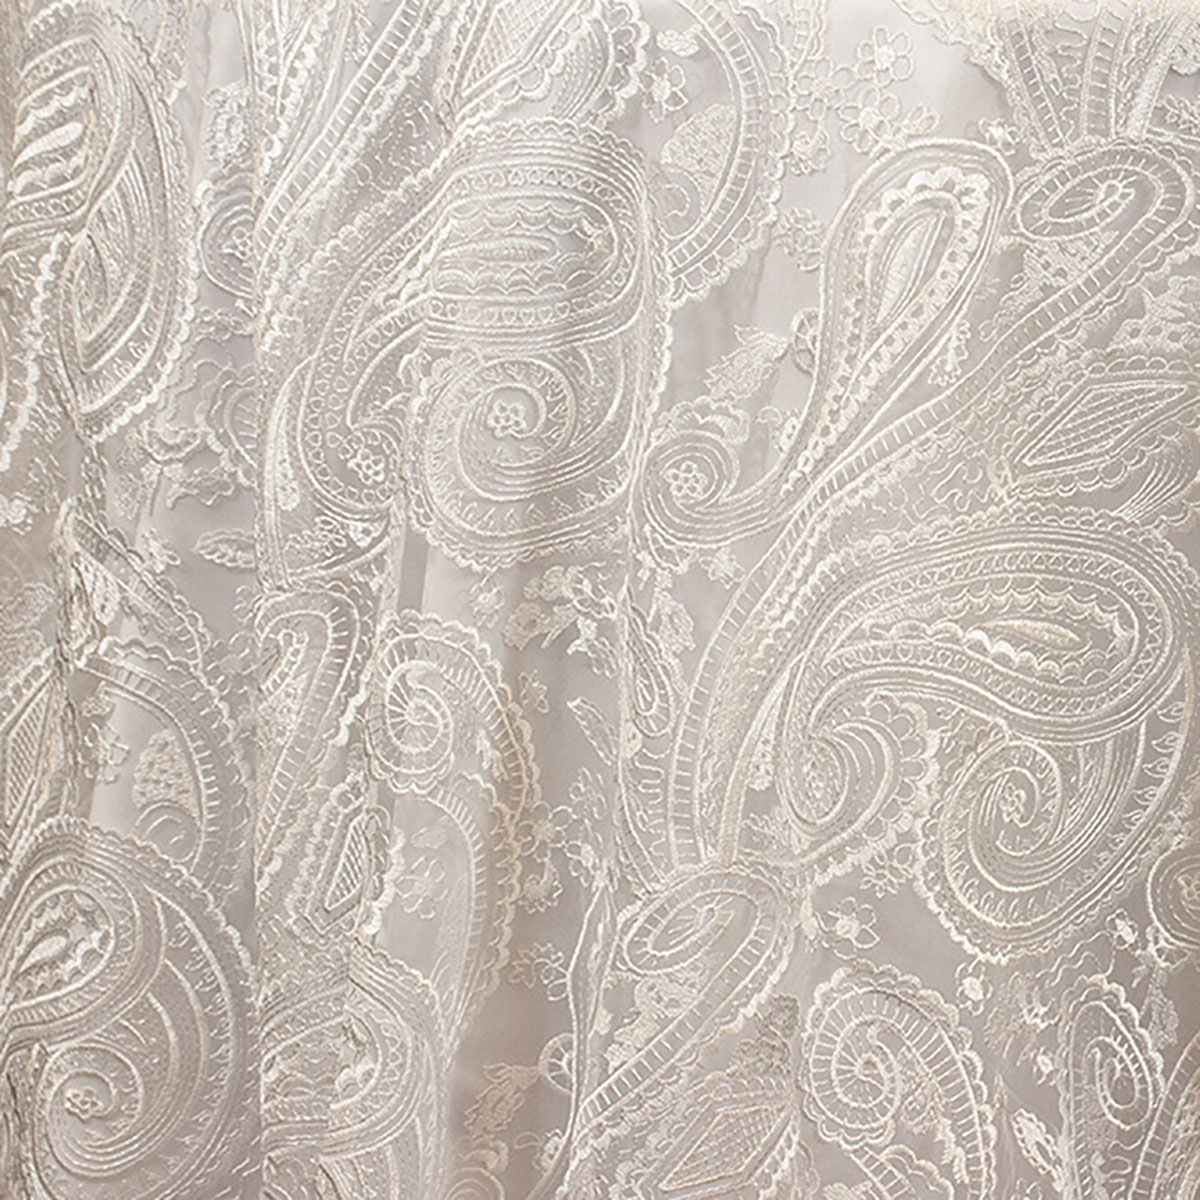 White Paisley Lace